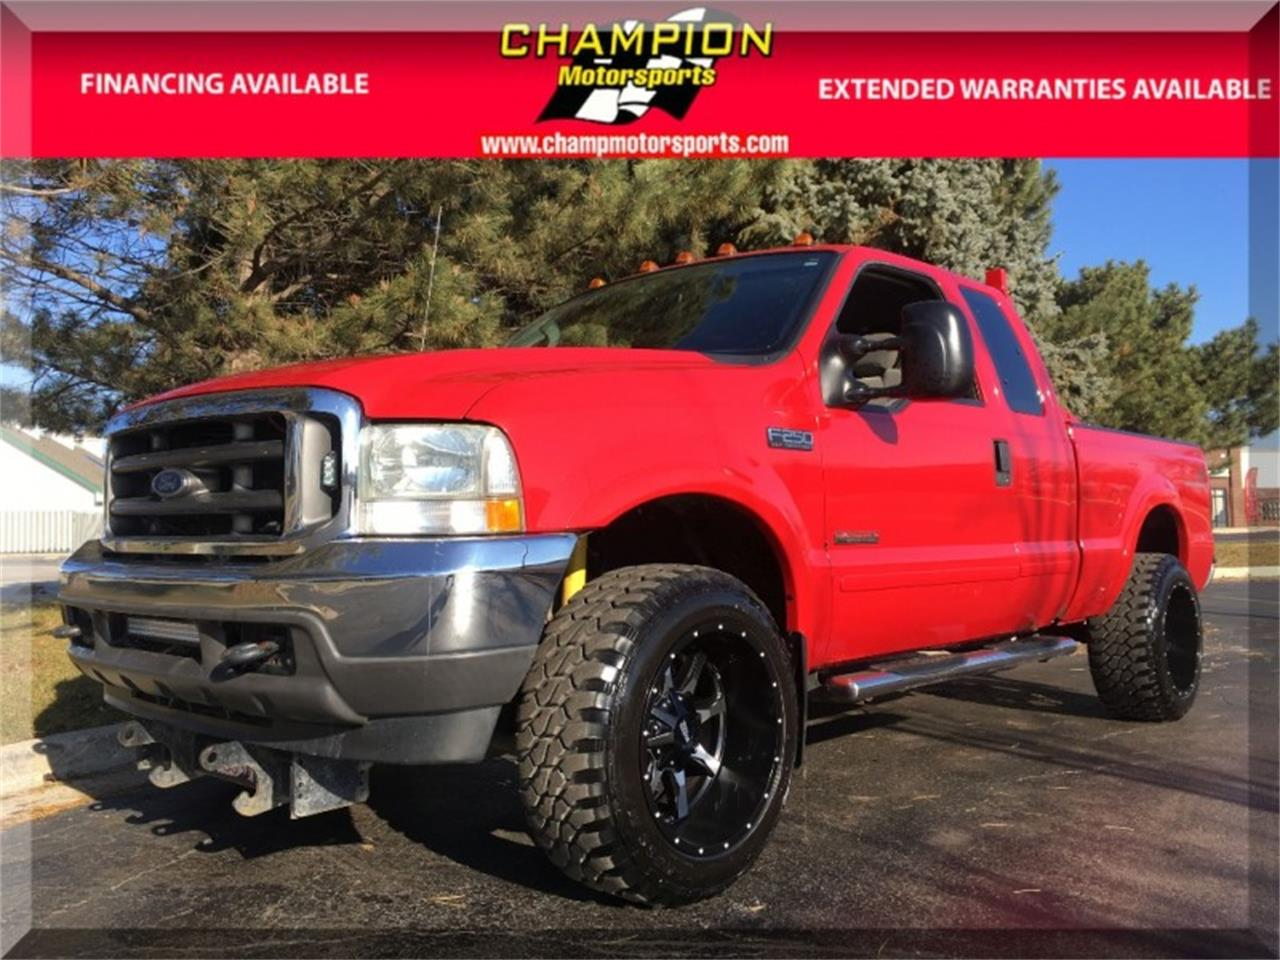 For Sale: 2004 Ford F250 in Crestwood, Illinois